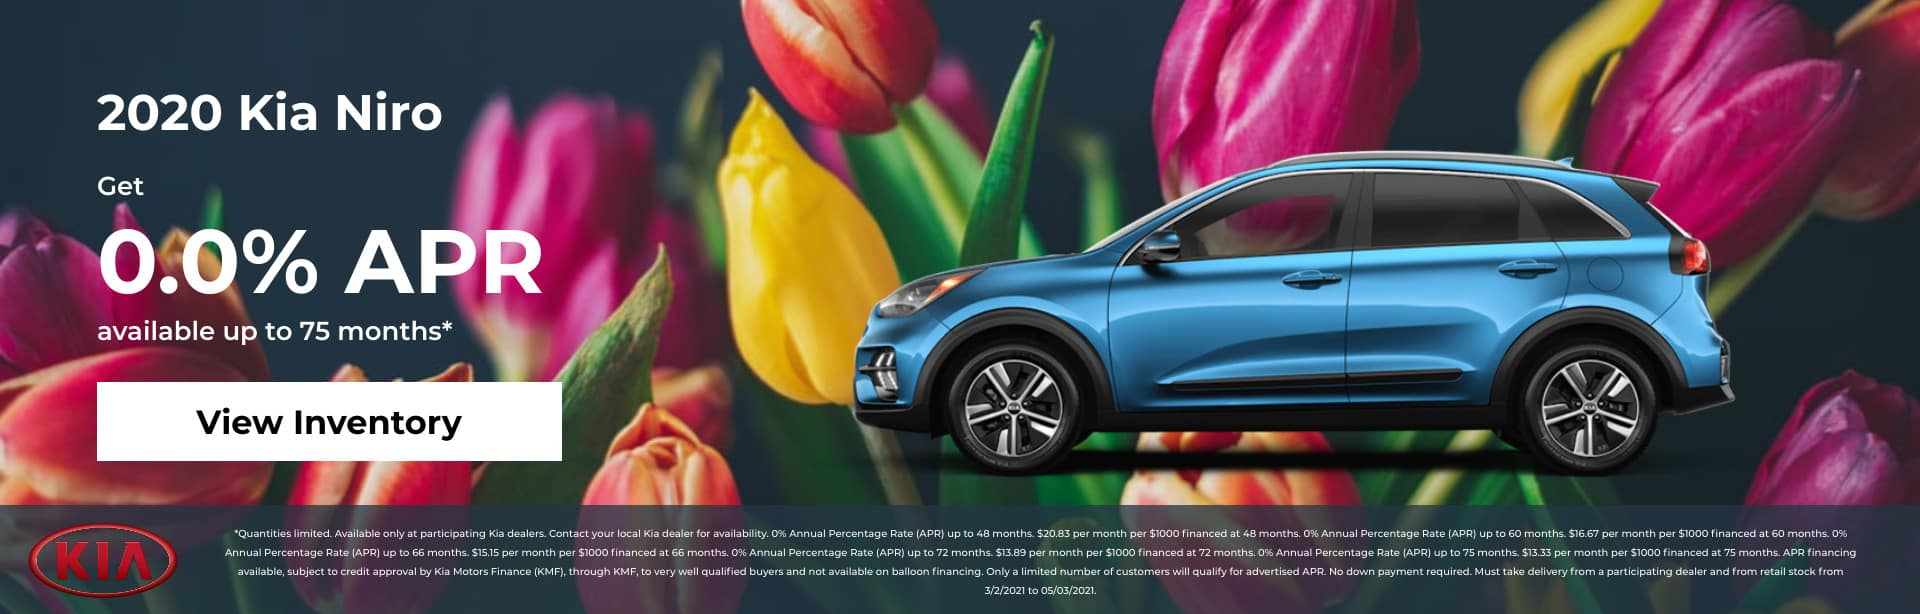 2020 Kia Niro Get 0% APR up to 75 months